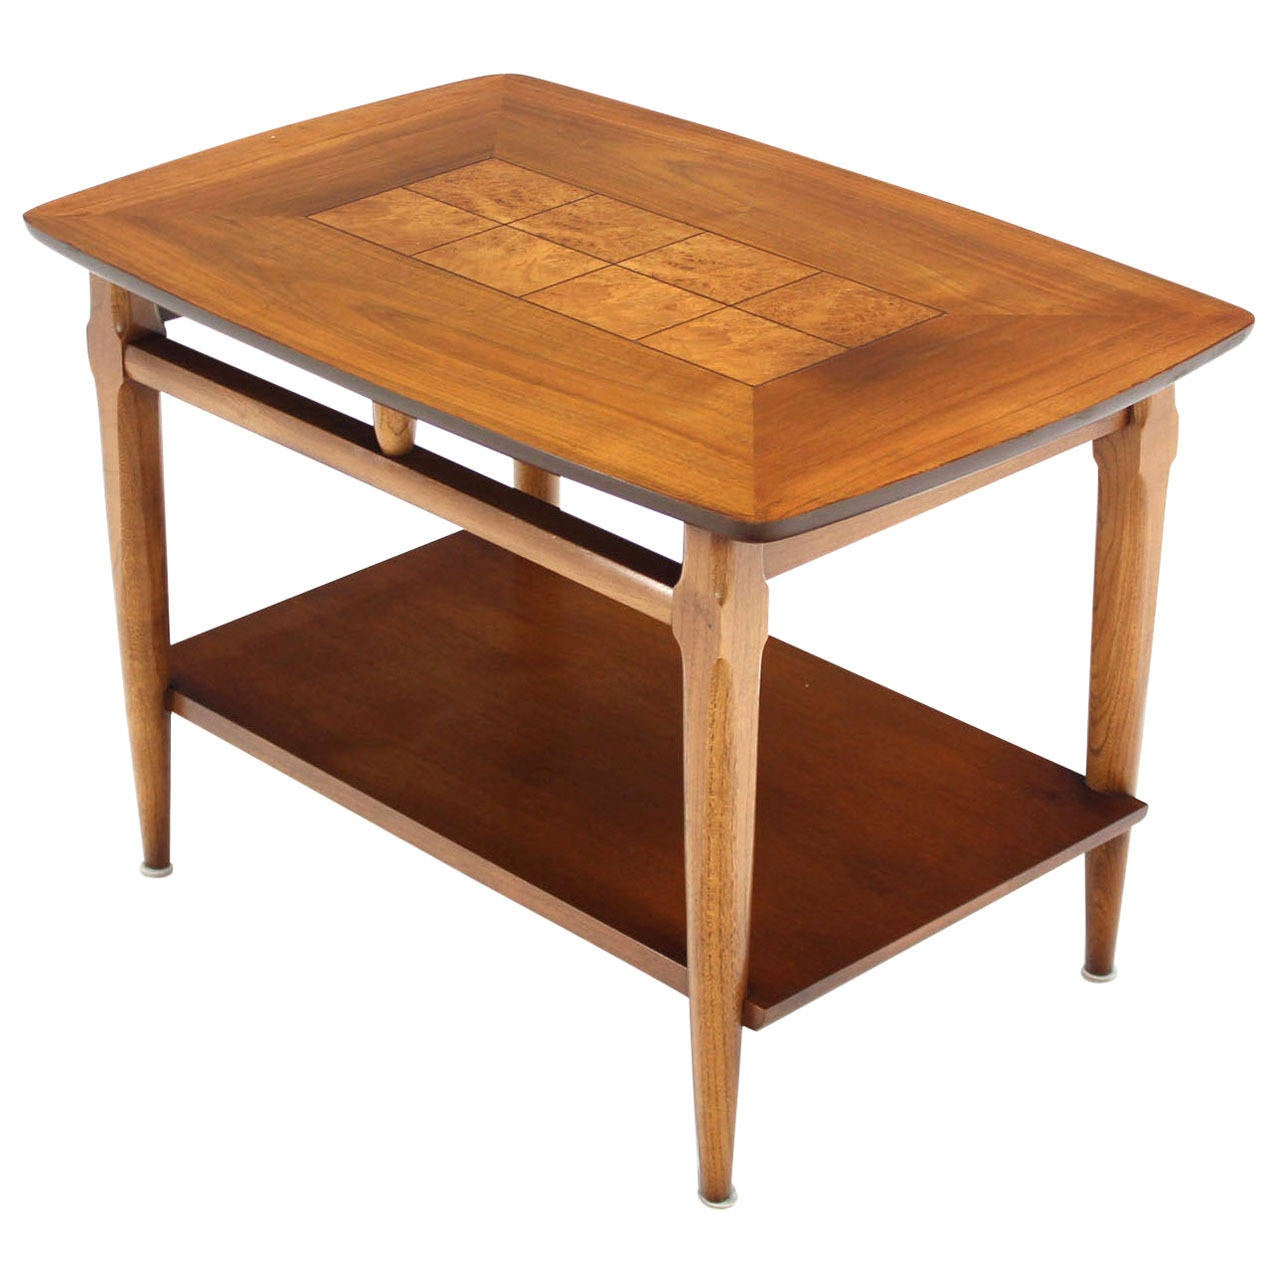 Walnut and burl wood end or side table at stdibs